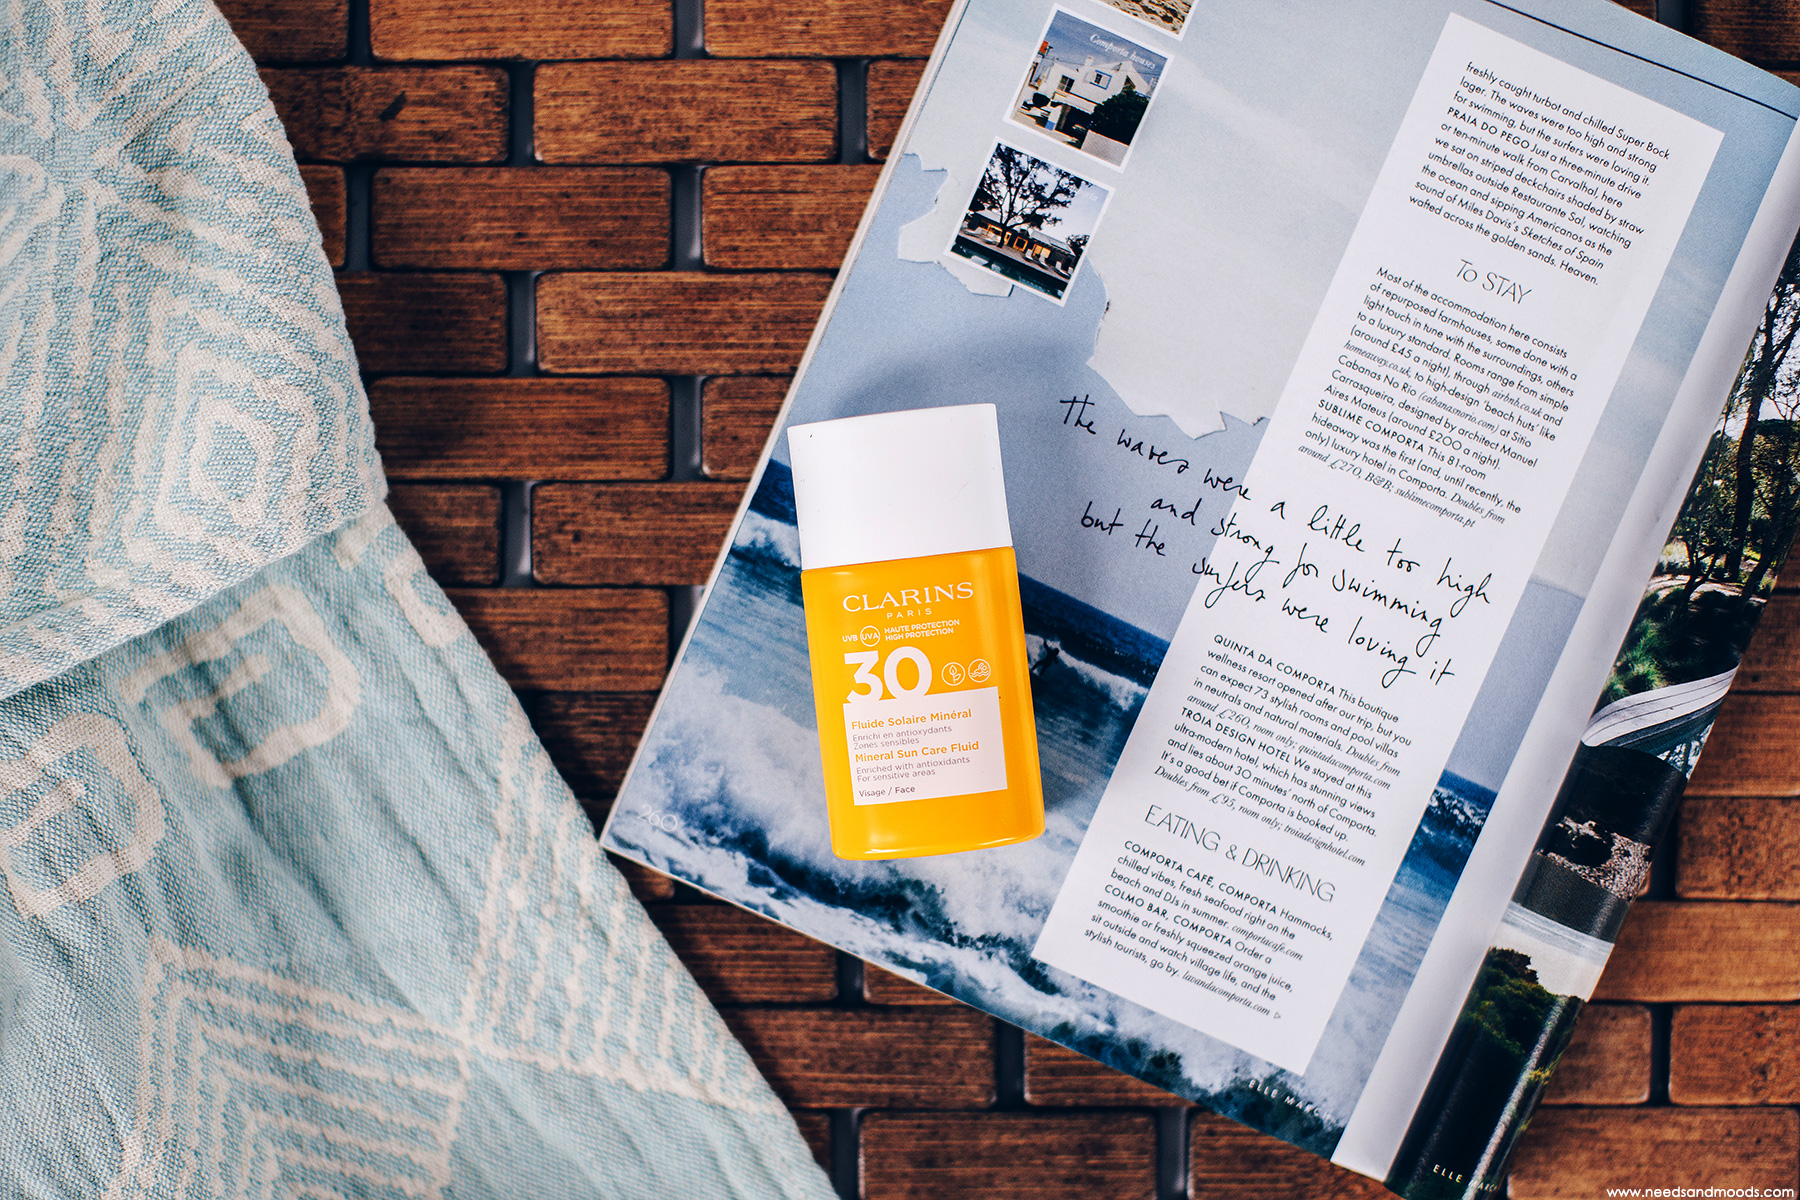 clarins fluide solaire mineral SPF 30